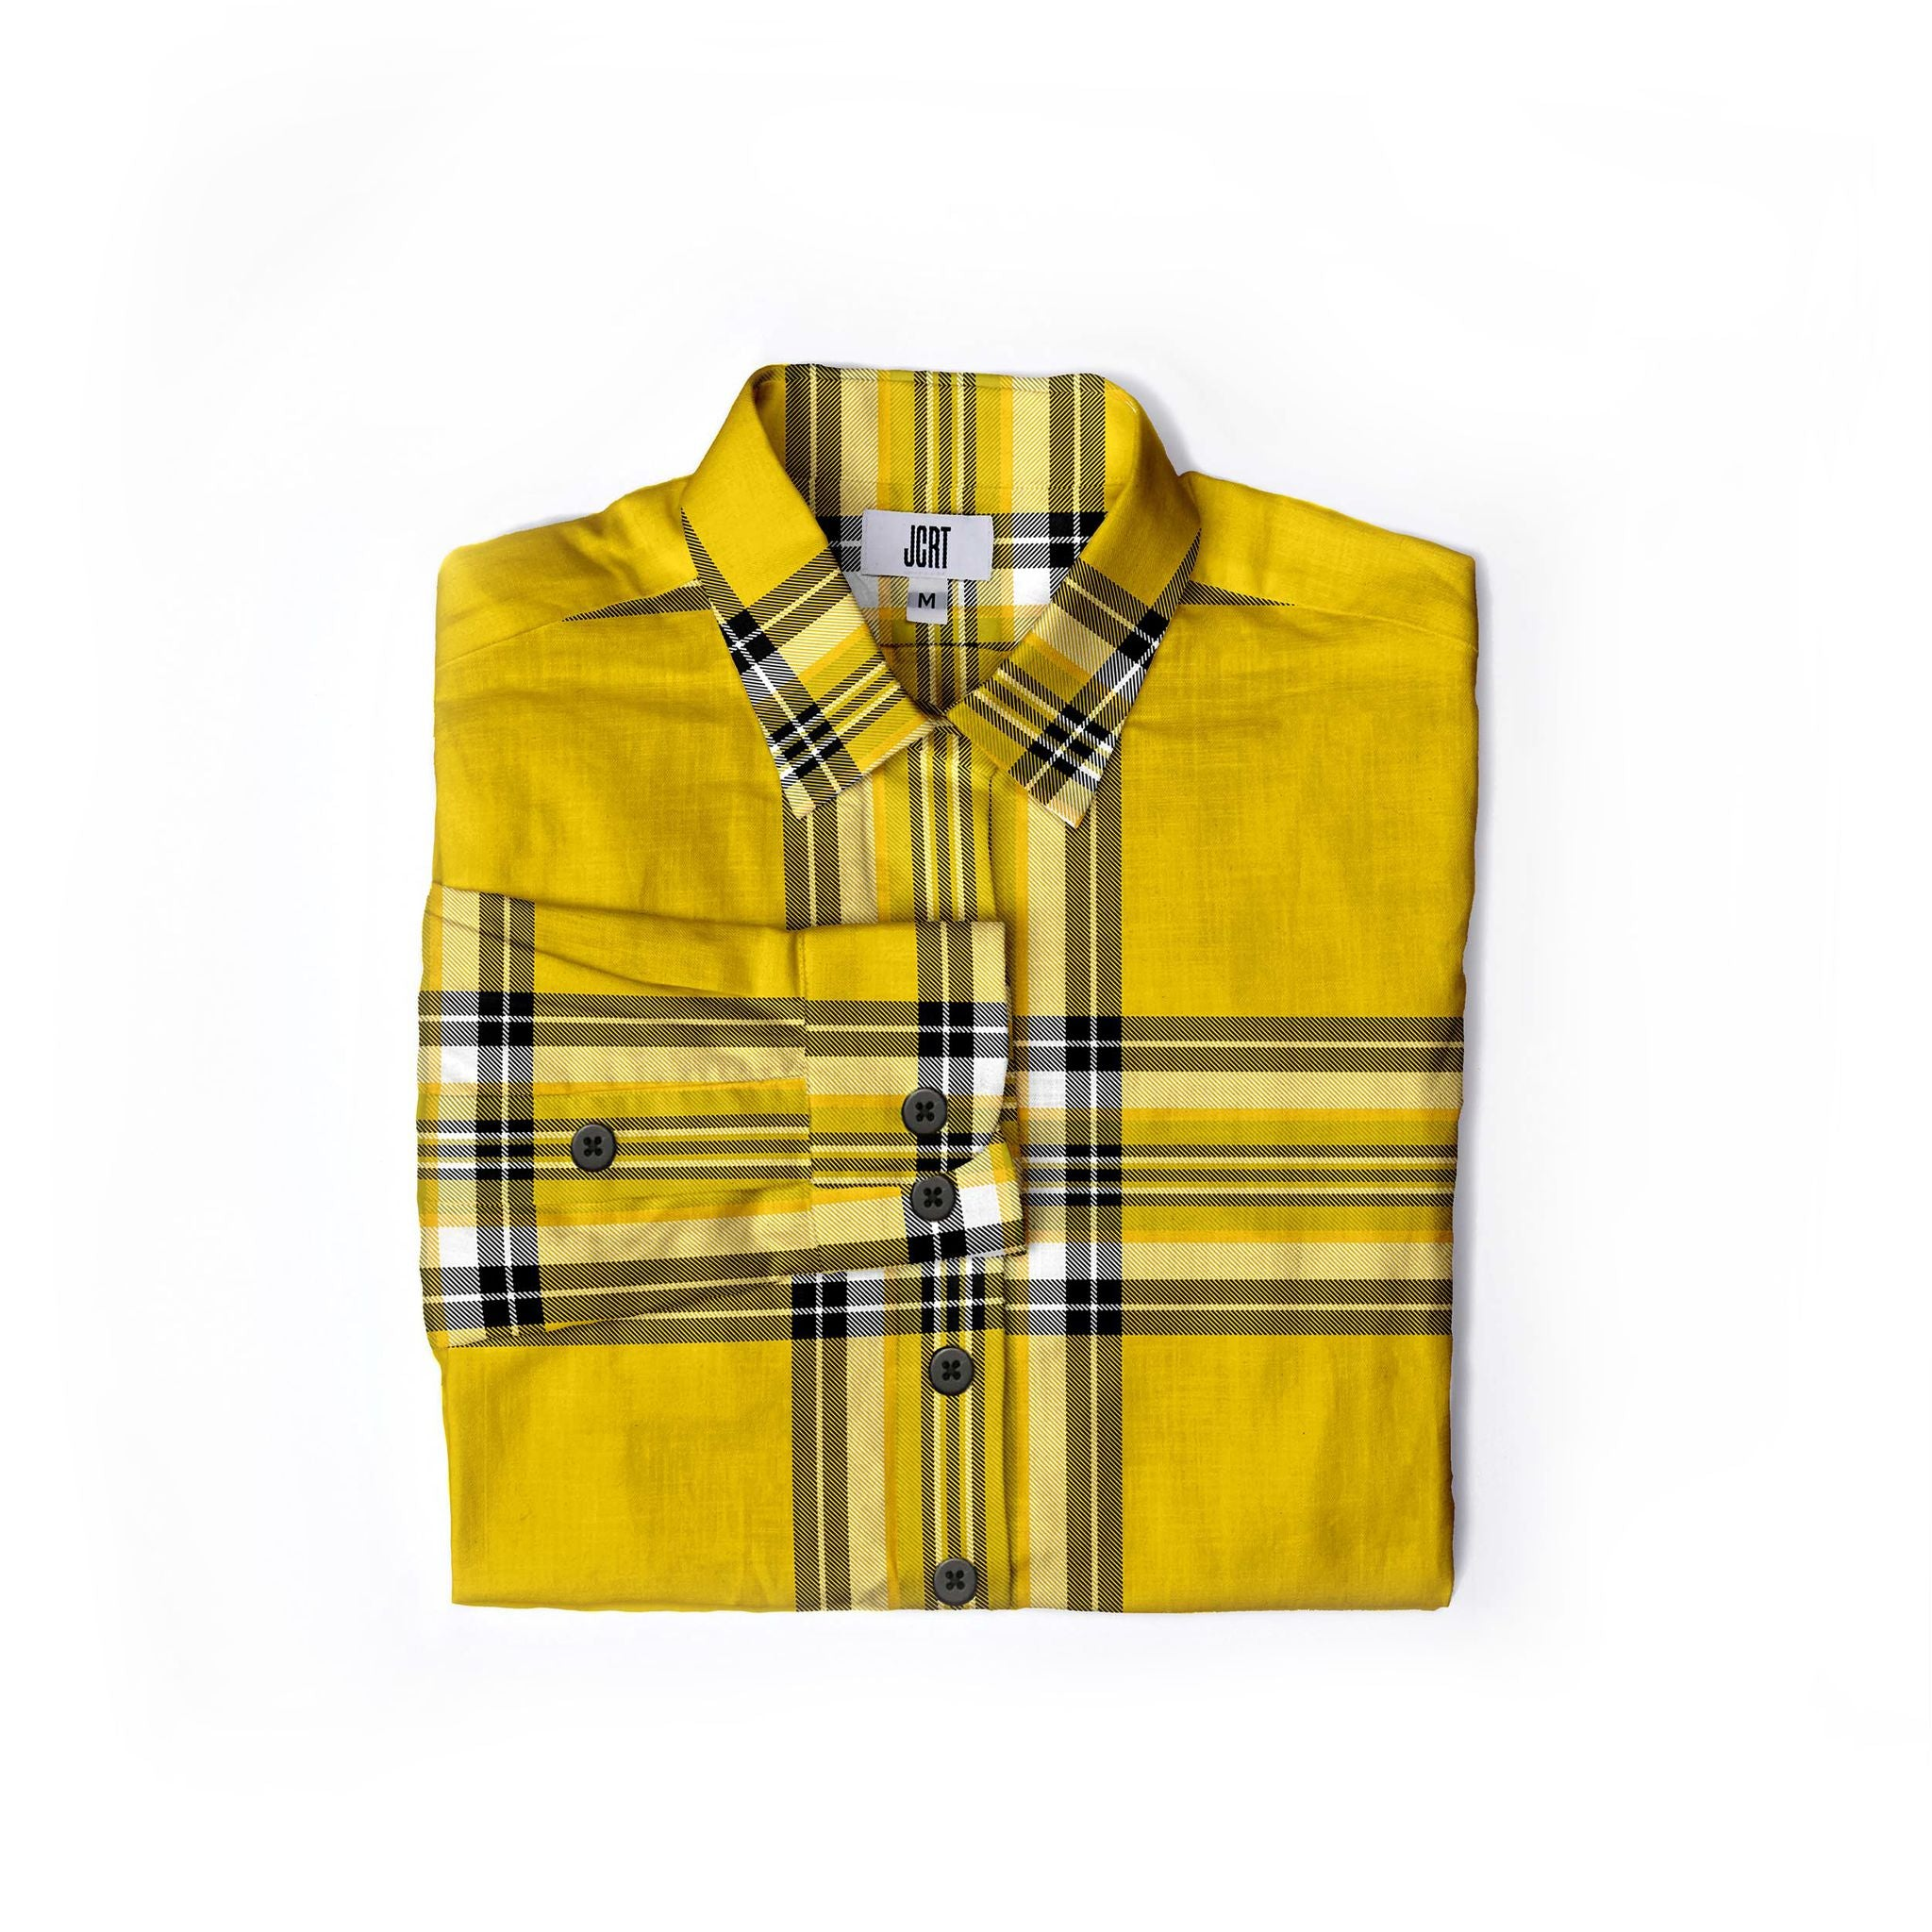 The Clueless Plaid Women's Long Sleeve Shirt